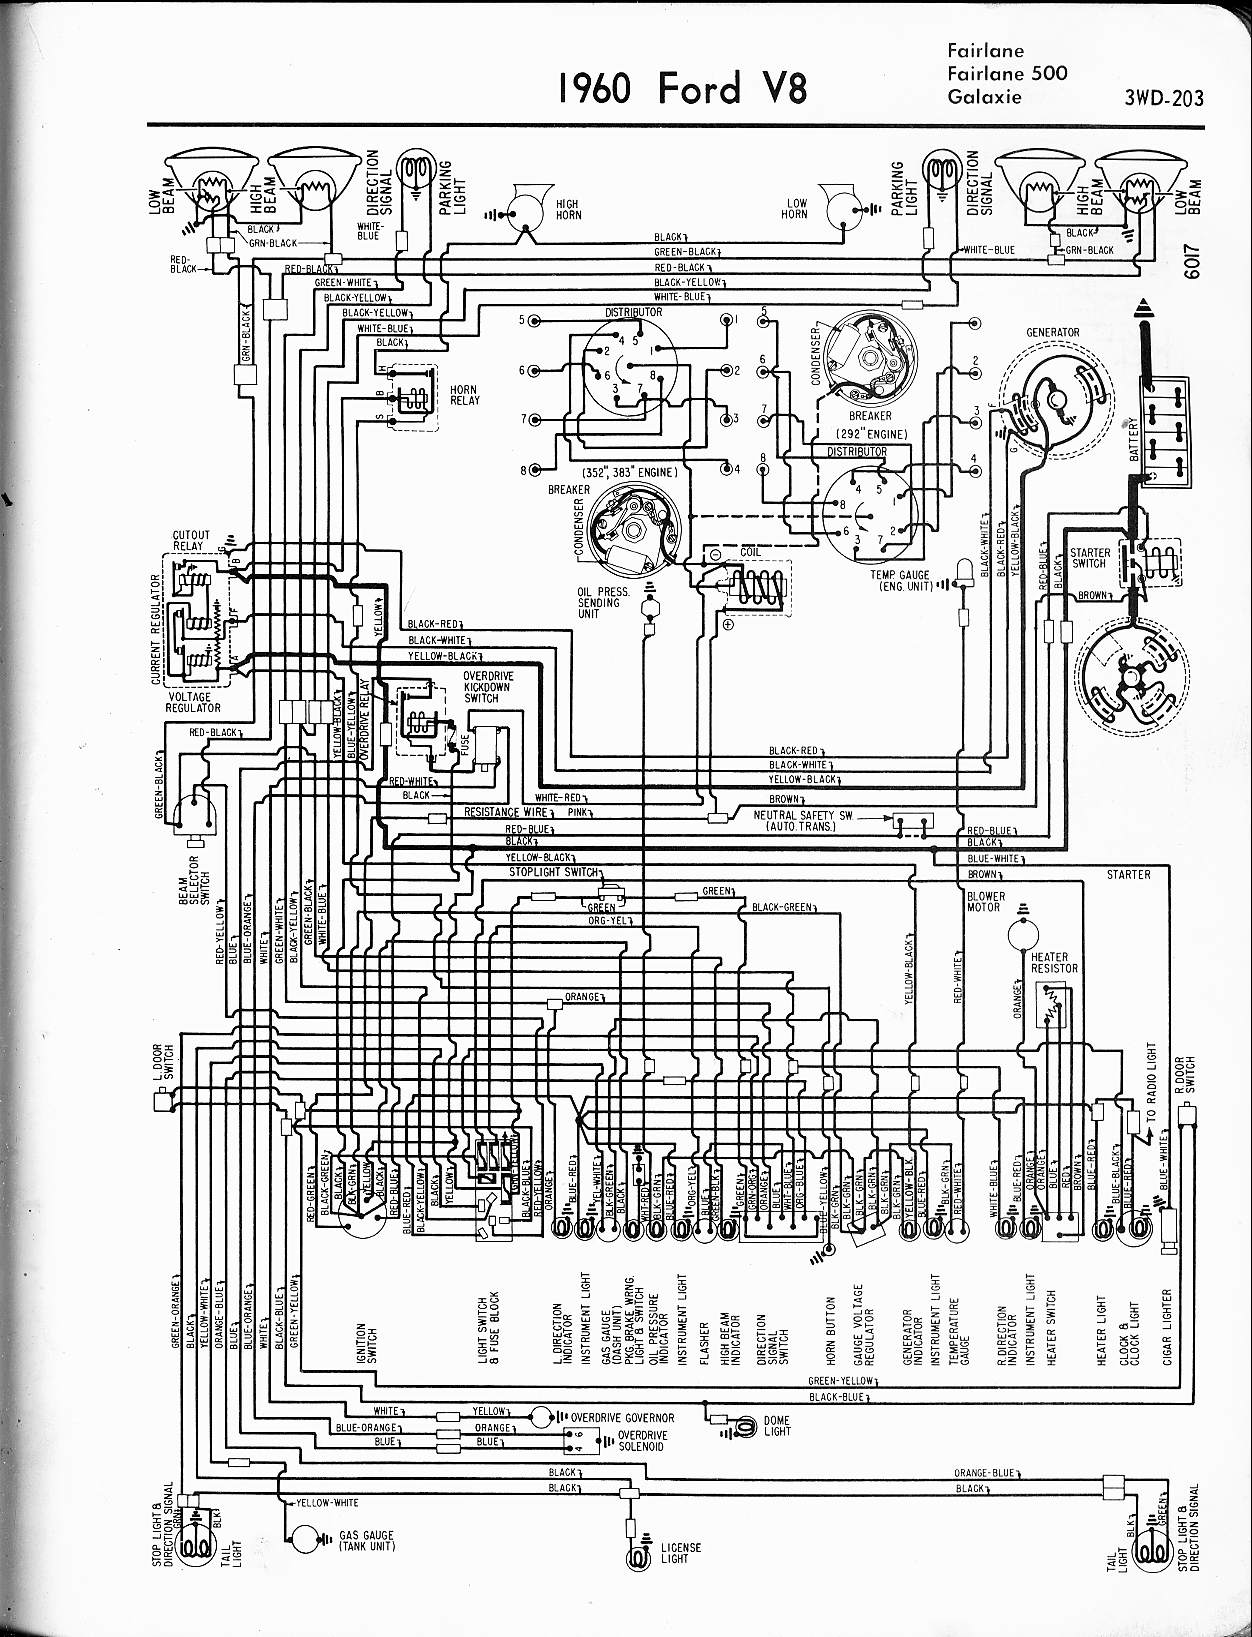 Wiring Diagram Also 1973 Amc Javelin Further 1955 Diagrams Of 1964 Rambler 6 American Part 2 Ford Galaxie 500 Data